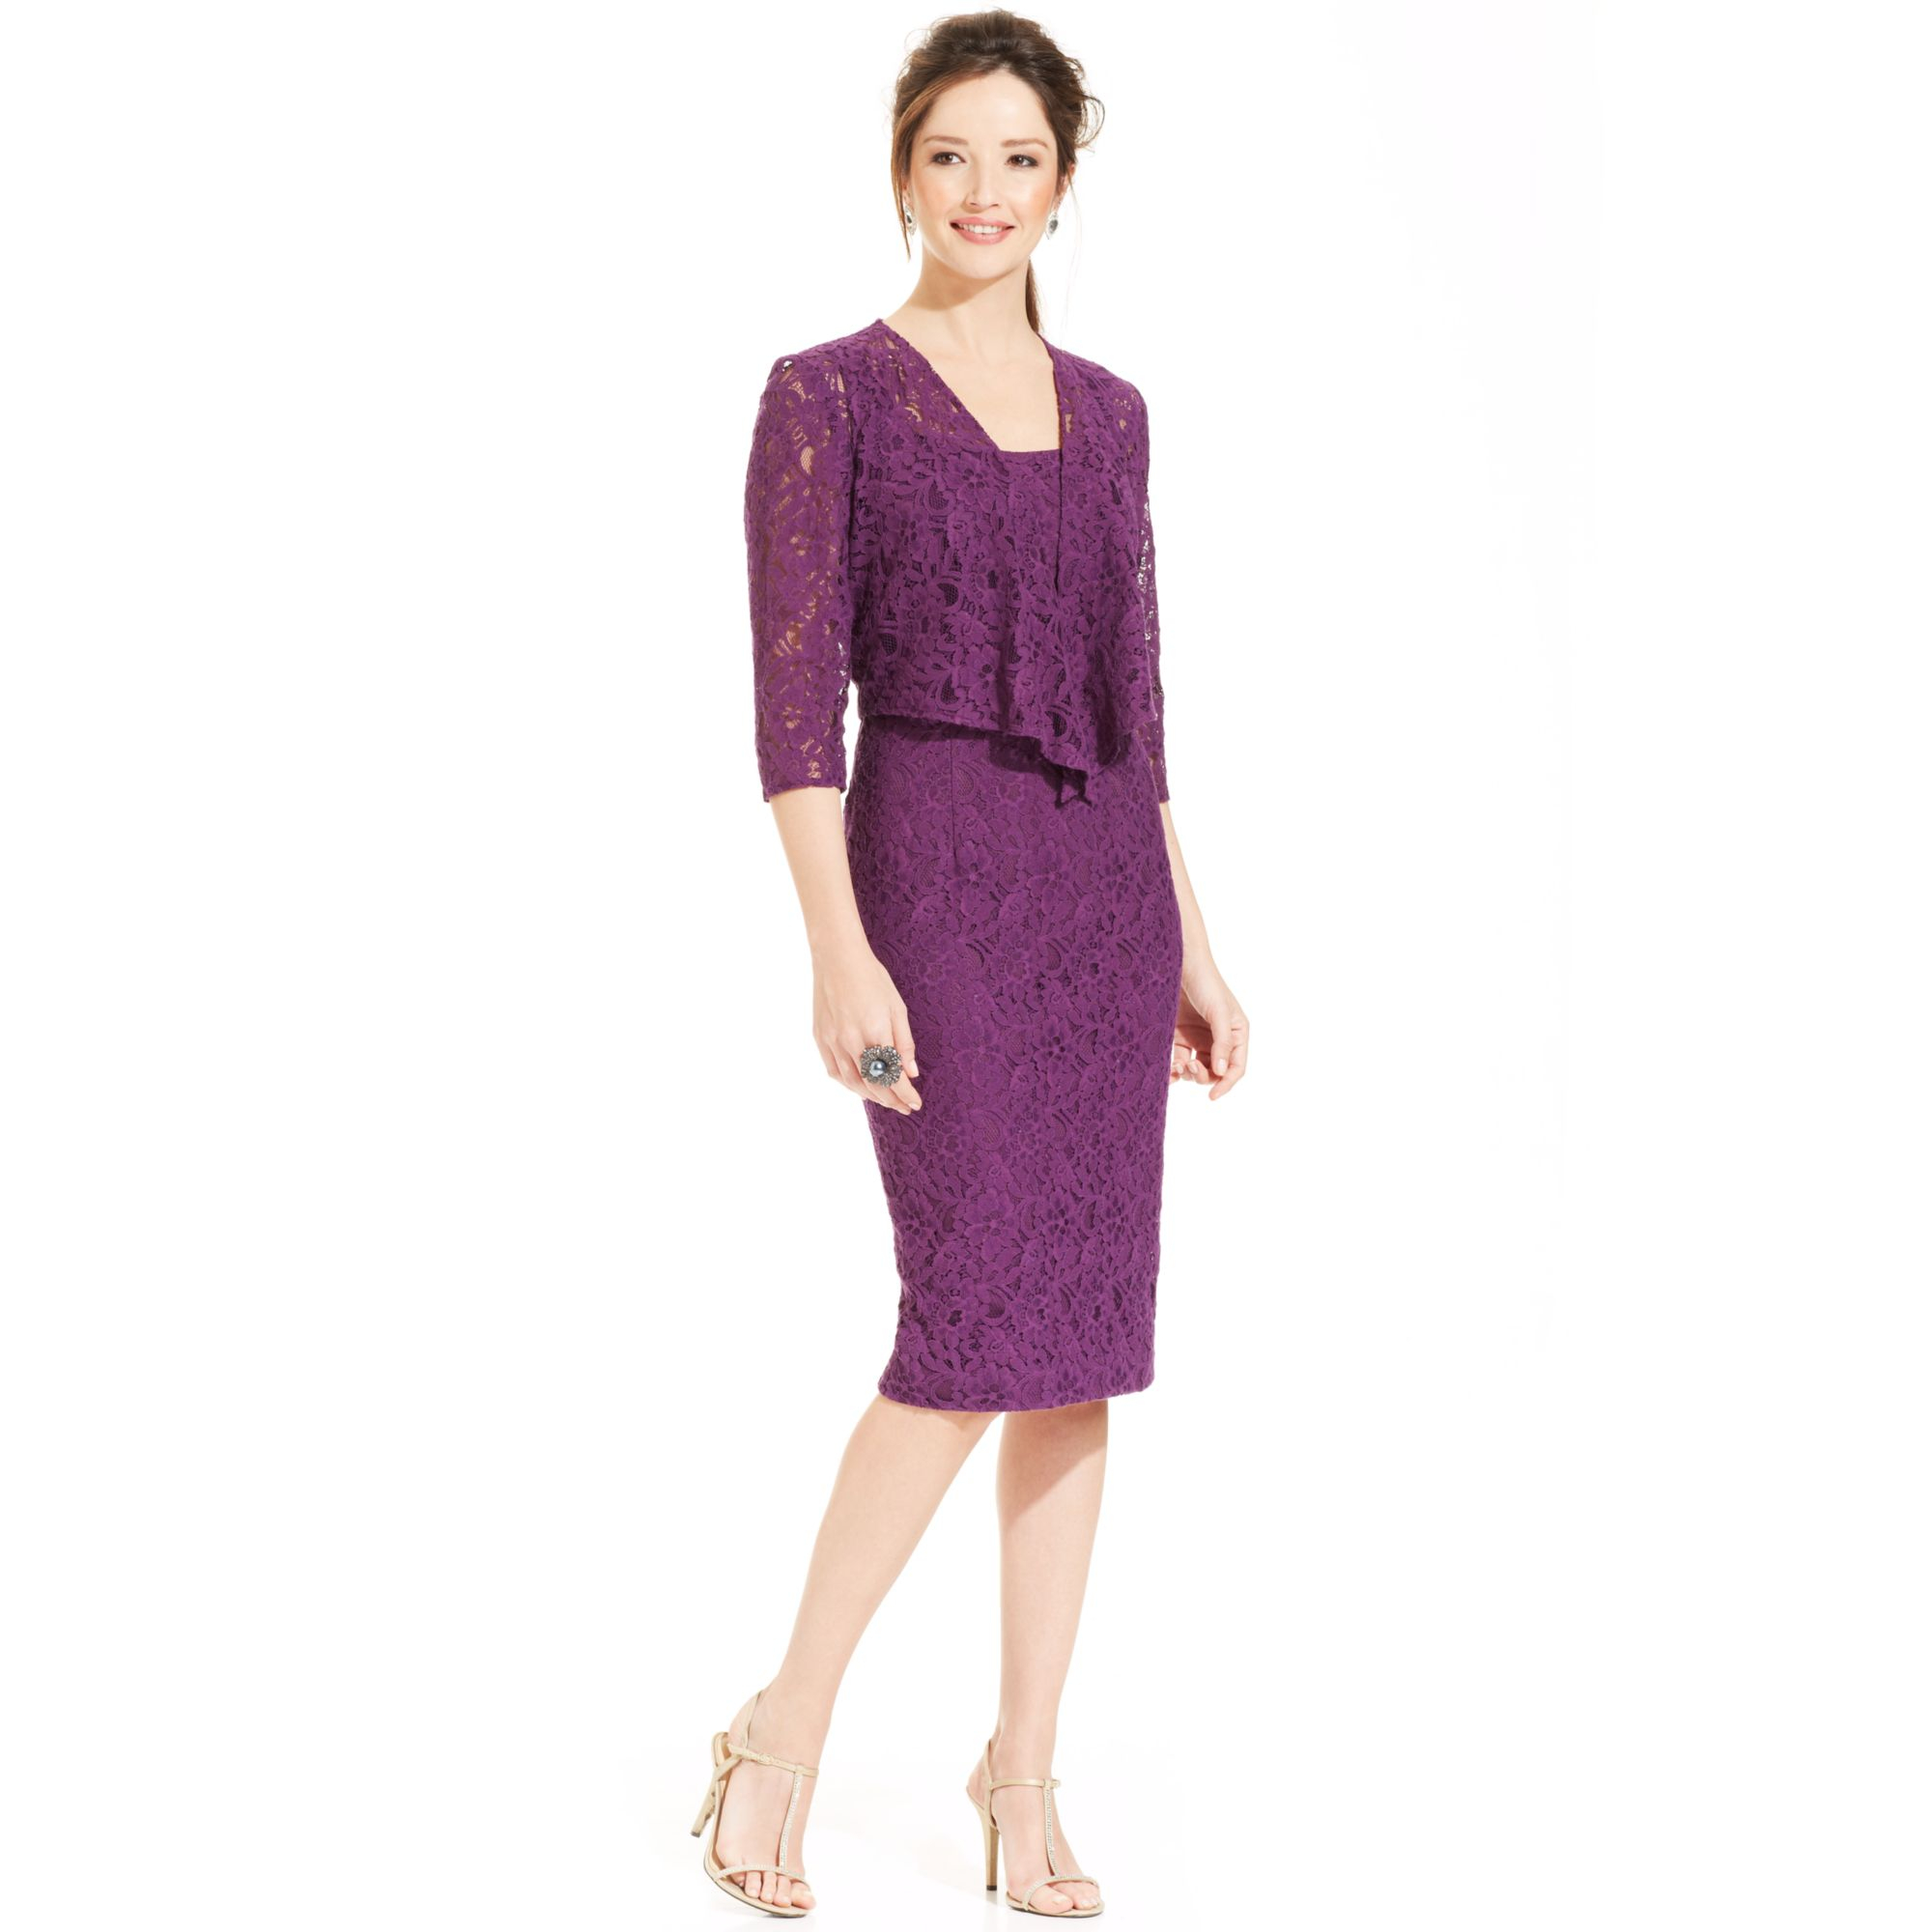 Lyst Alex Evenings Petite Sleeveless Lace Dress And Jacket In Purple